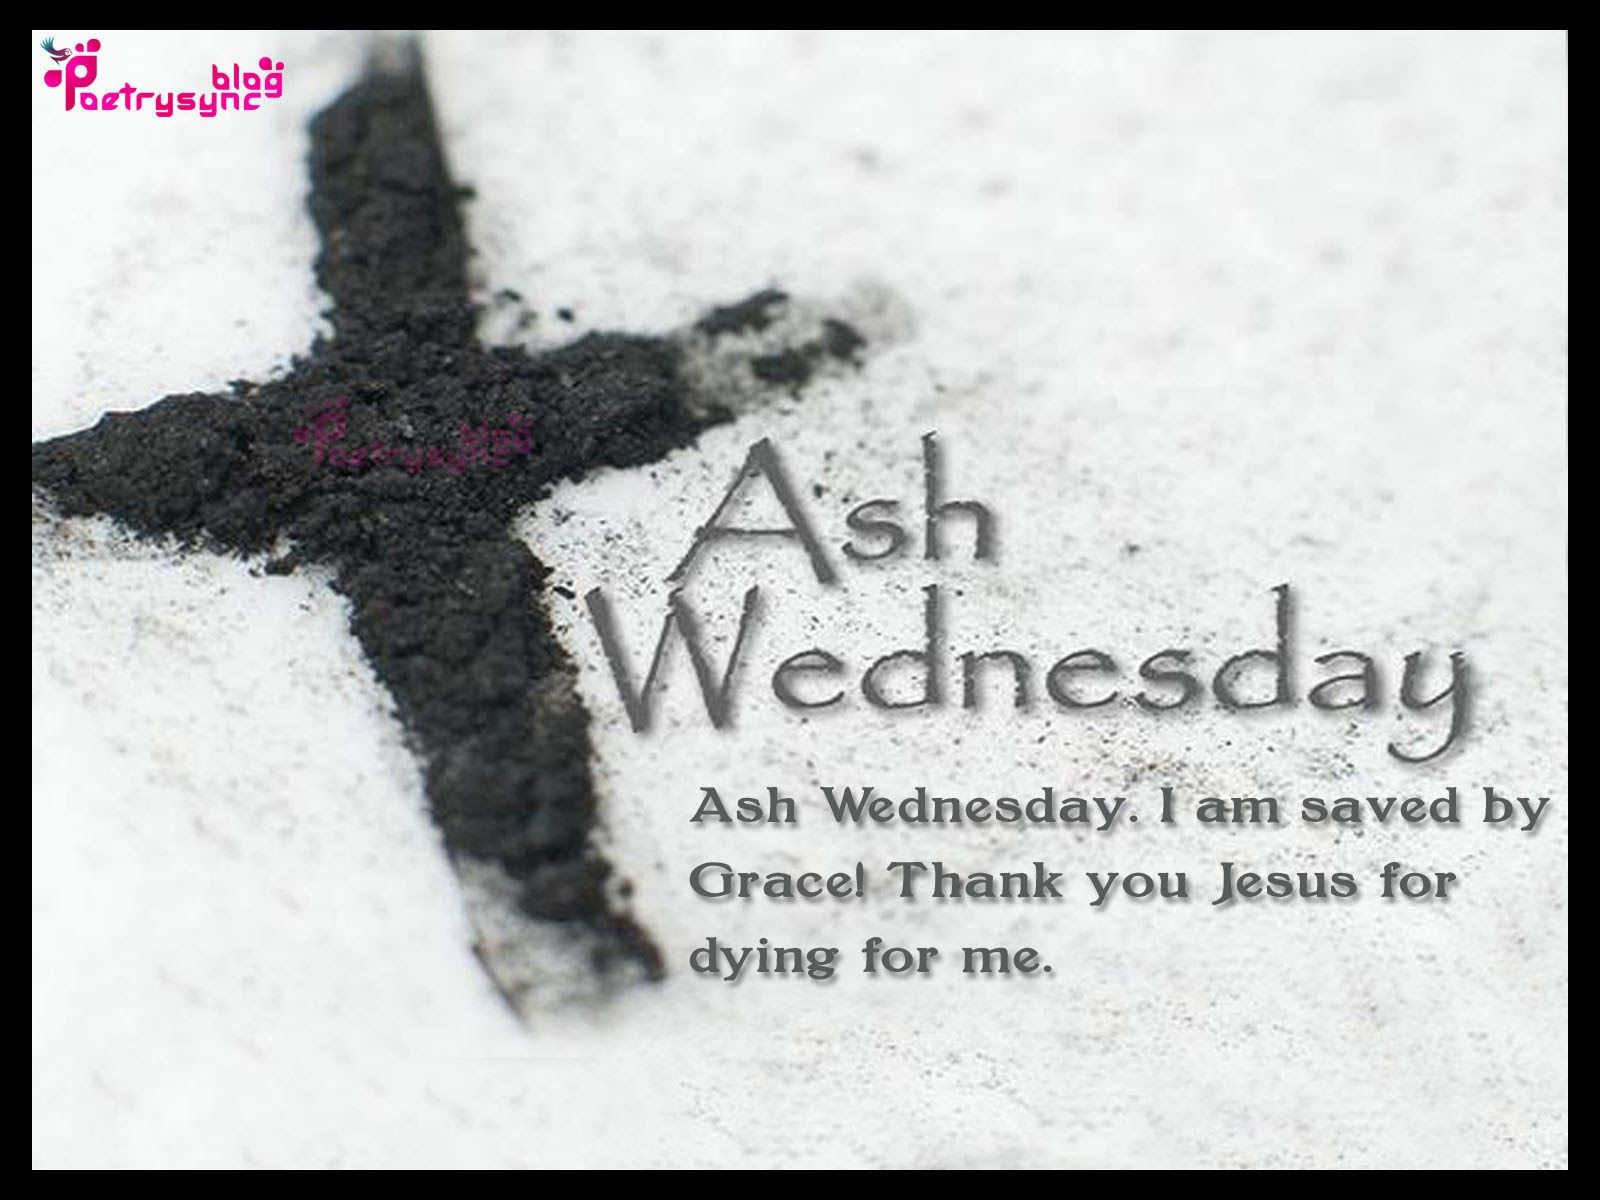 Ash wednesday image card and wishes quotes sayings ash wednesday ash wednesday image card and wishes quotes sayings m4hsunfo